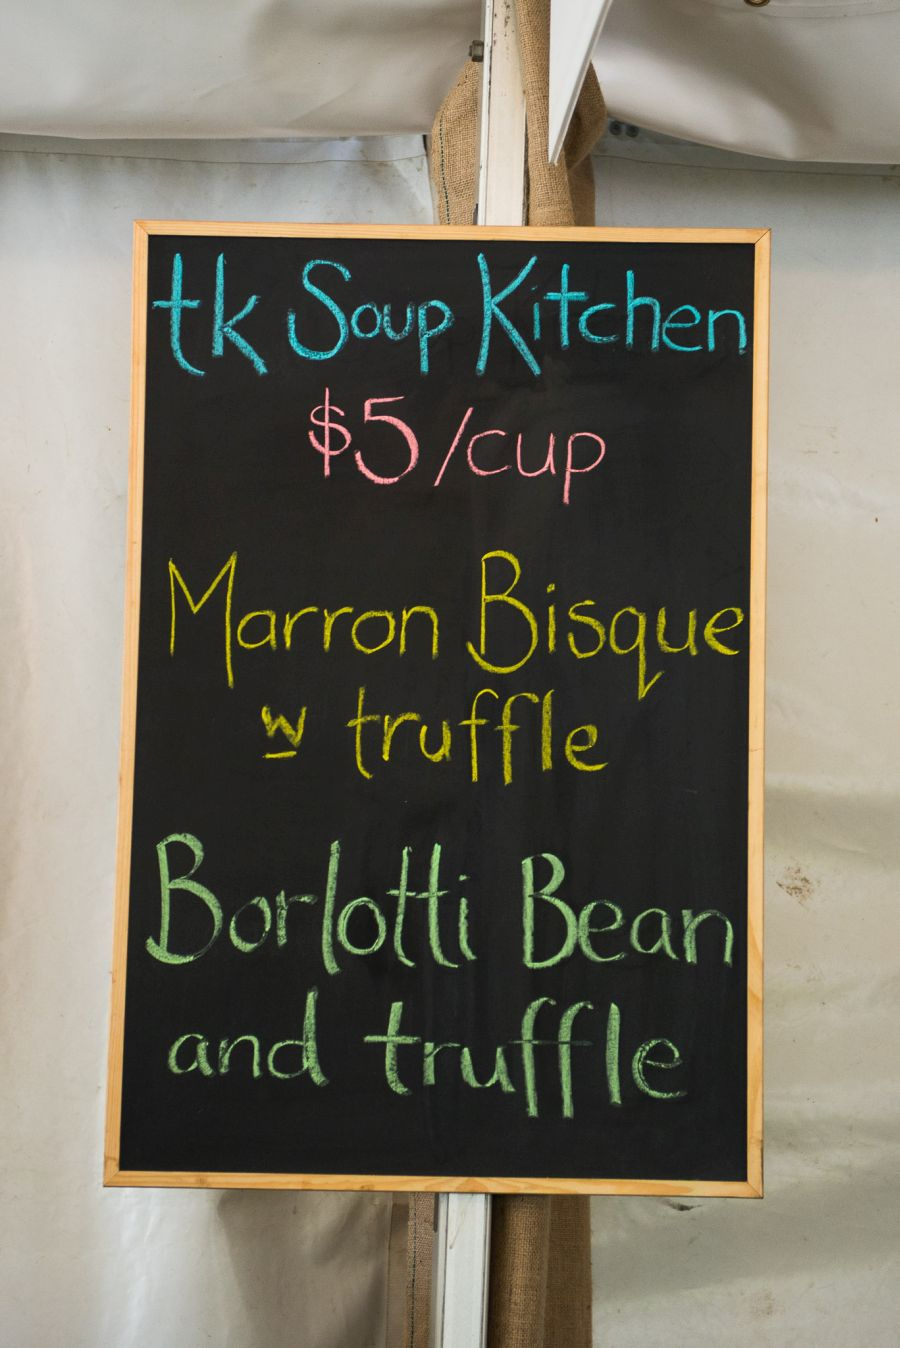 TK Soup Kitchen sign